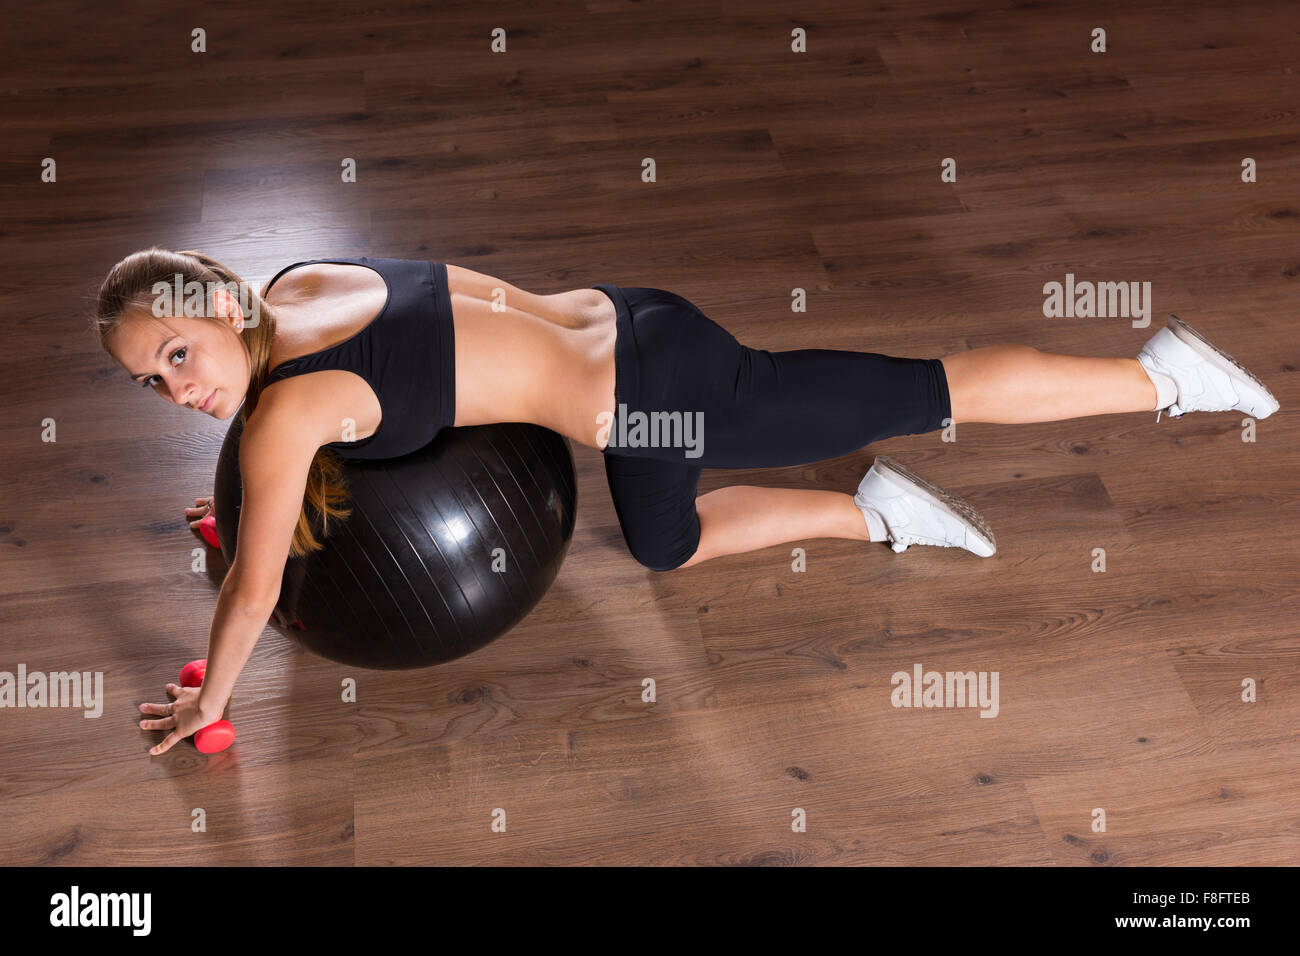 High Angle Full Length View of Young Woman Looking Up at Camera and Performing Leg Lift Core Strengthening Exercises - Stock Image